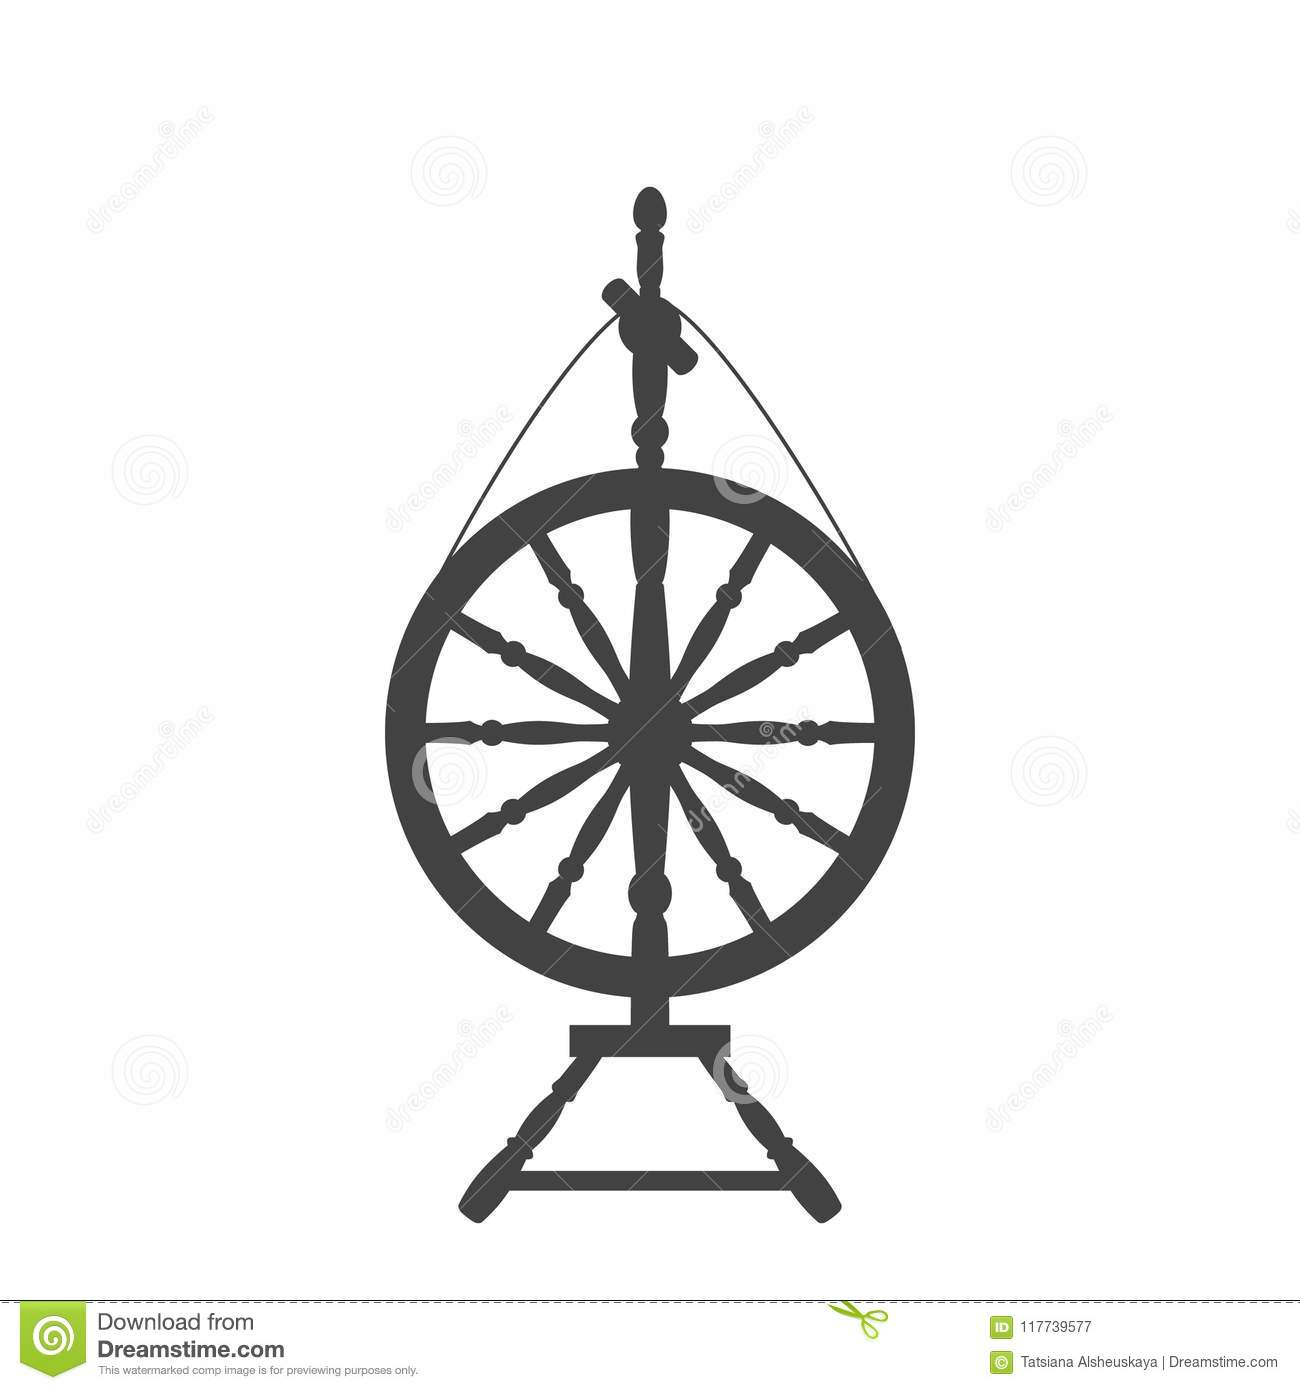 An Antique Spinning Wheel Icon Stock Vector Illustration Of Icon Wheel 117739577